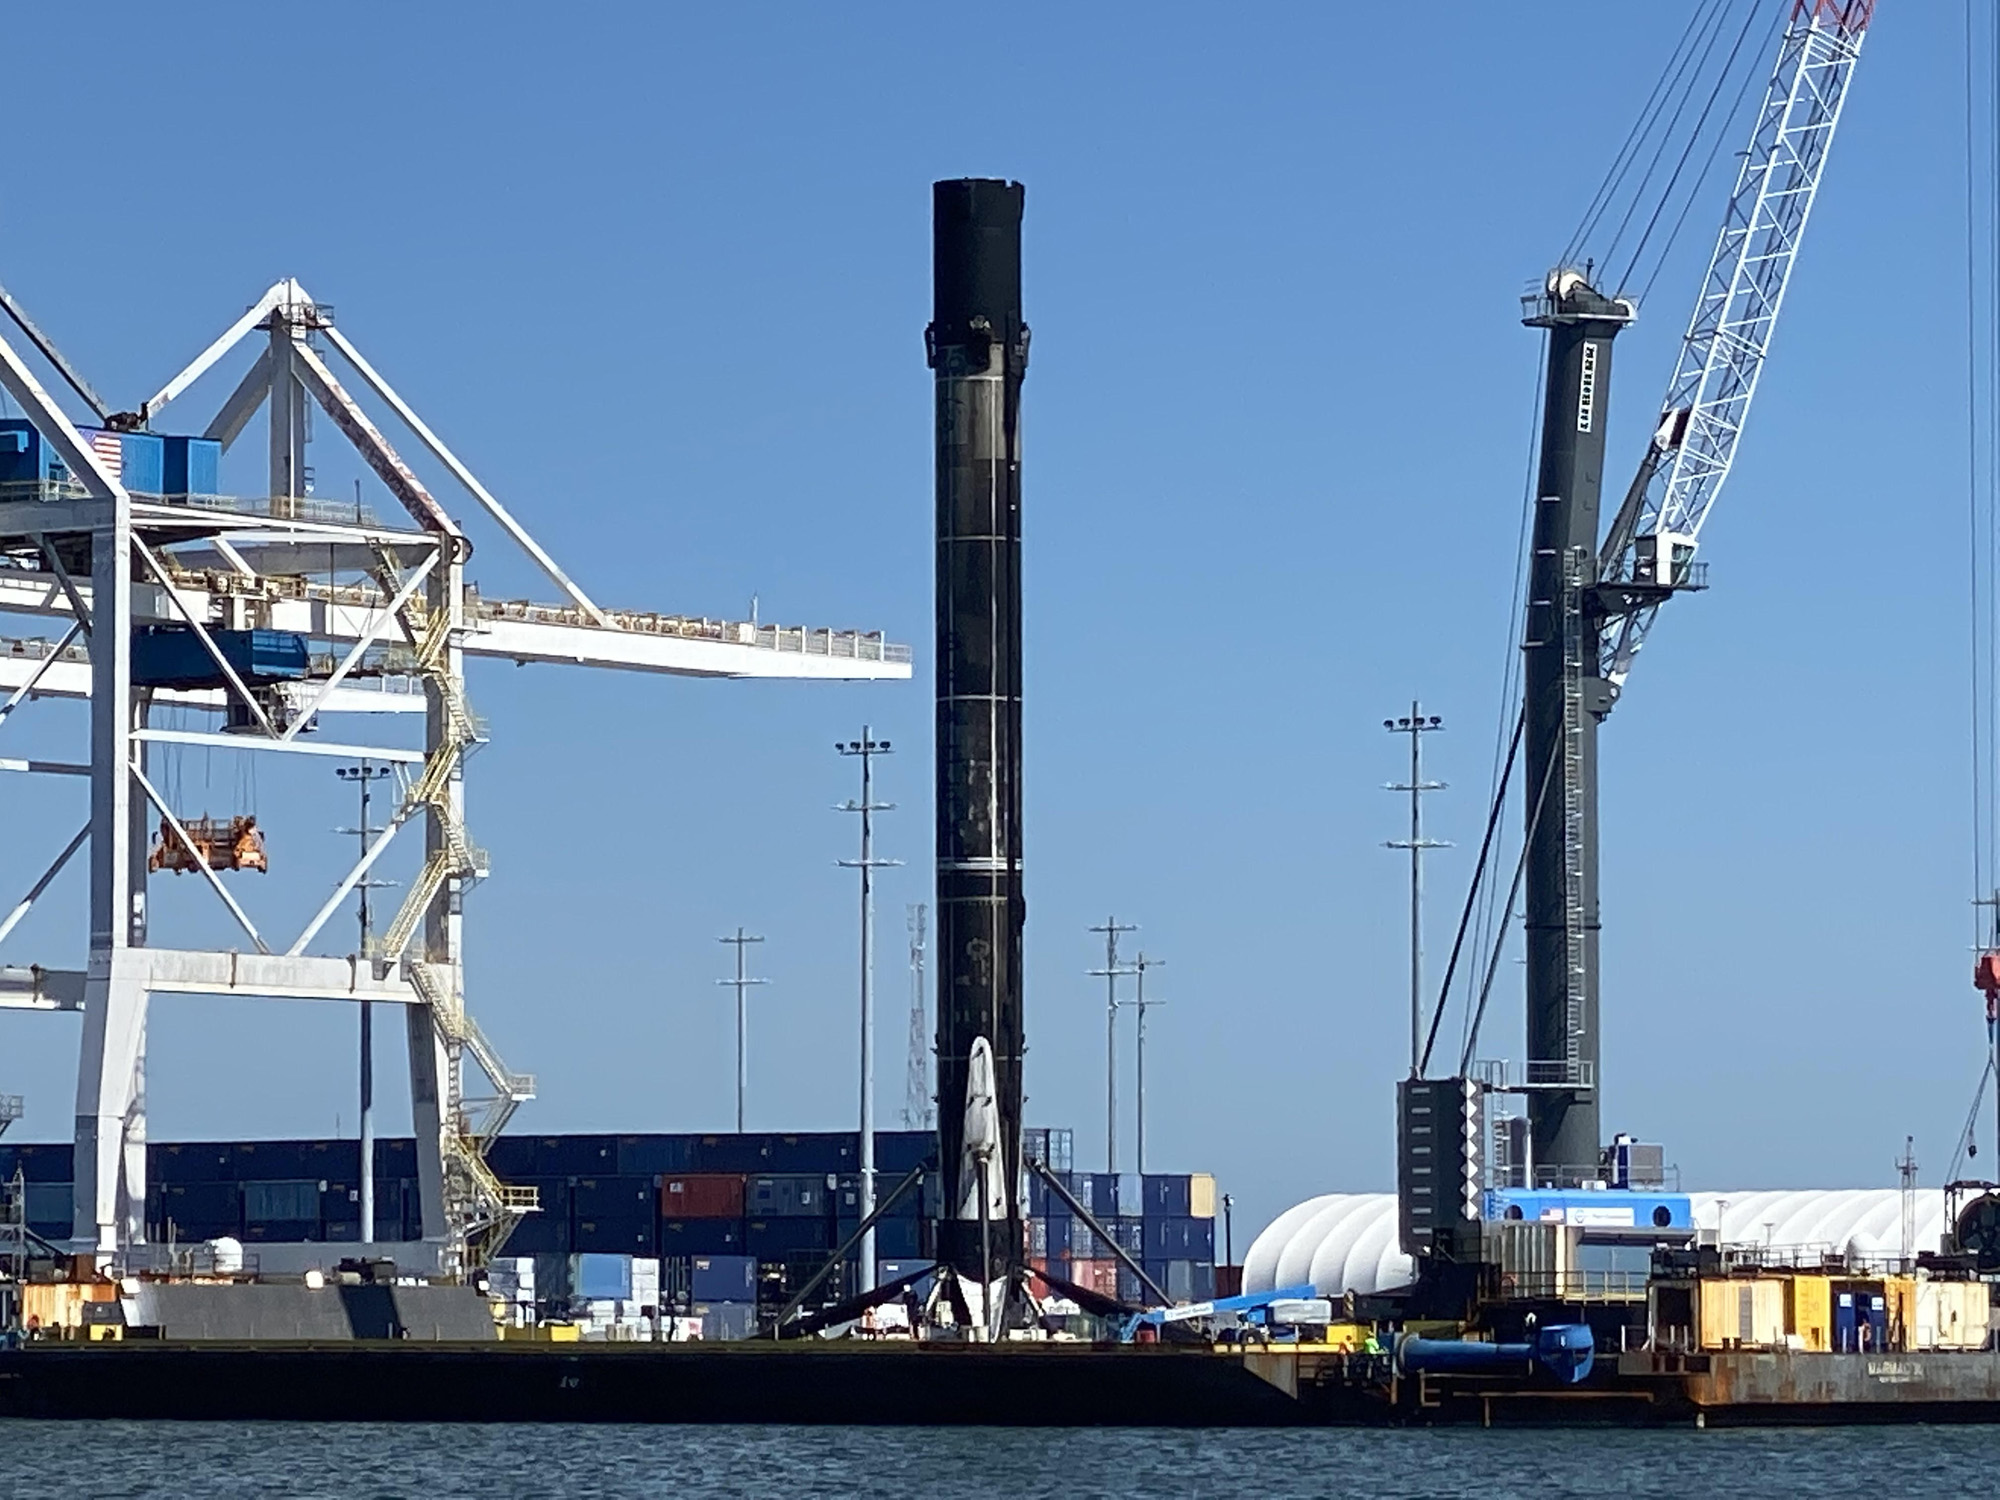 See SpaceX's most-flown rocket returns to home port after 9th flight (photos)